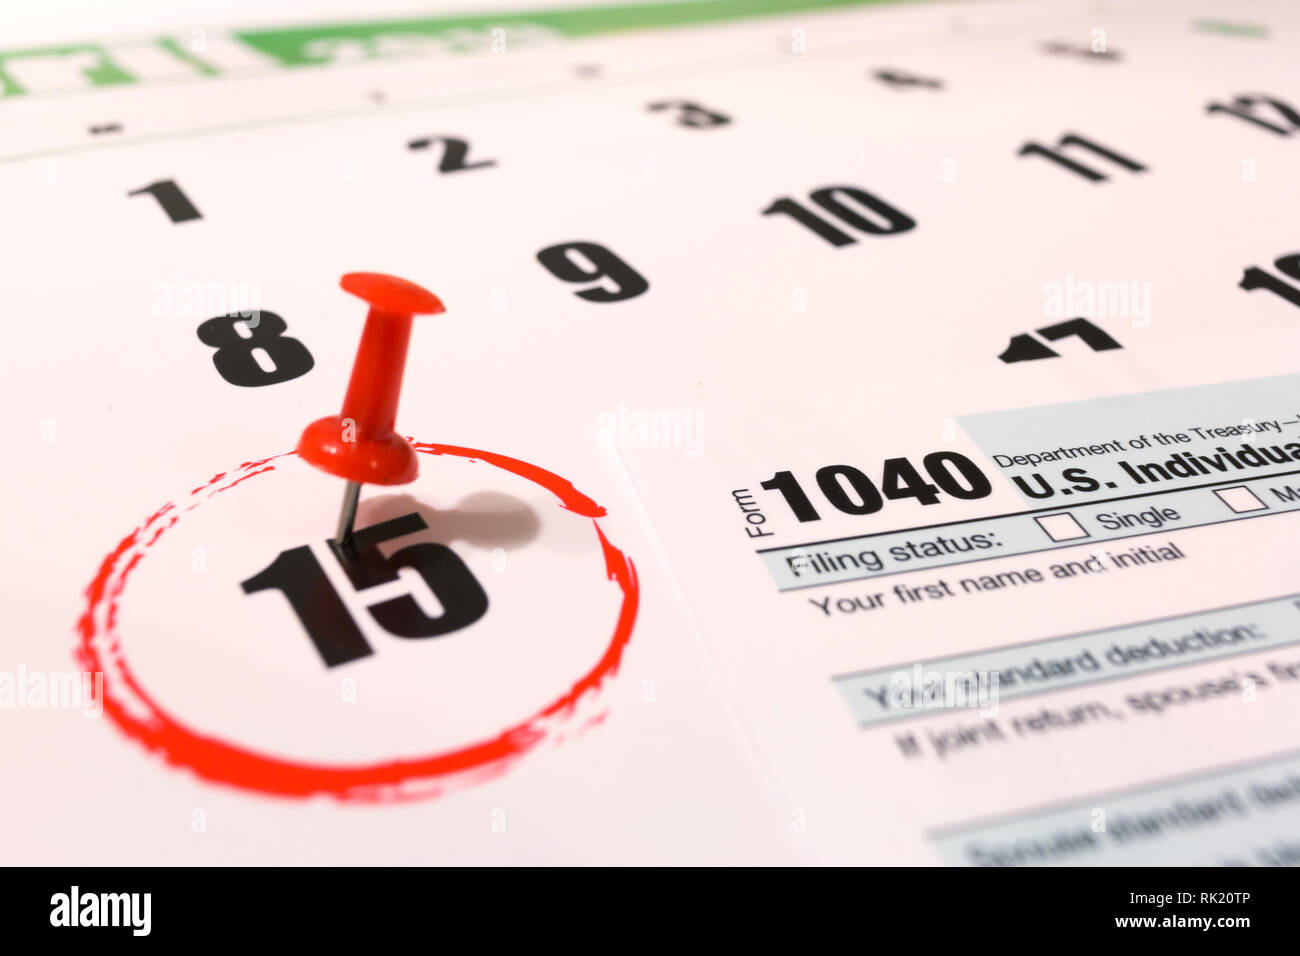 2019 calendar with 1040 income tax form for 2018 showing